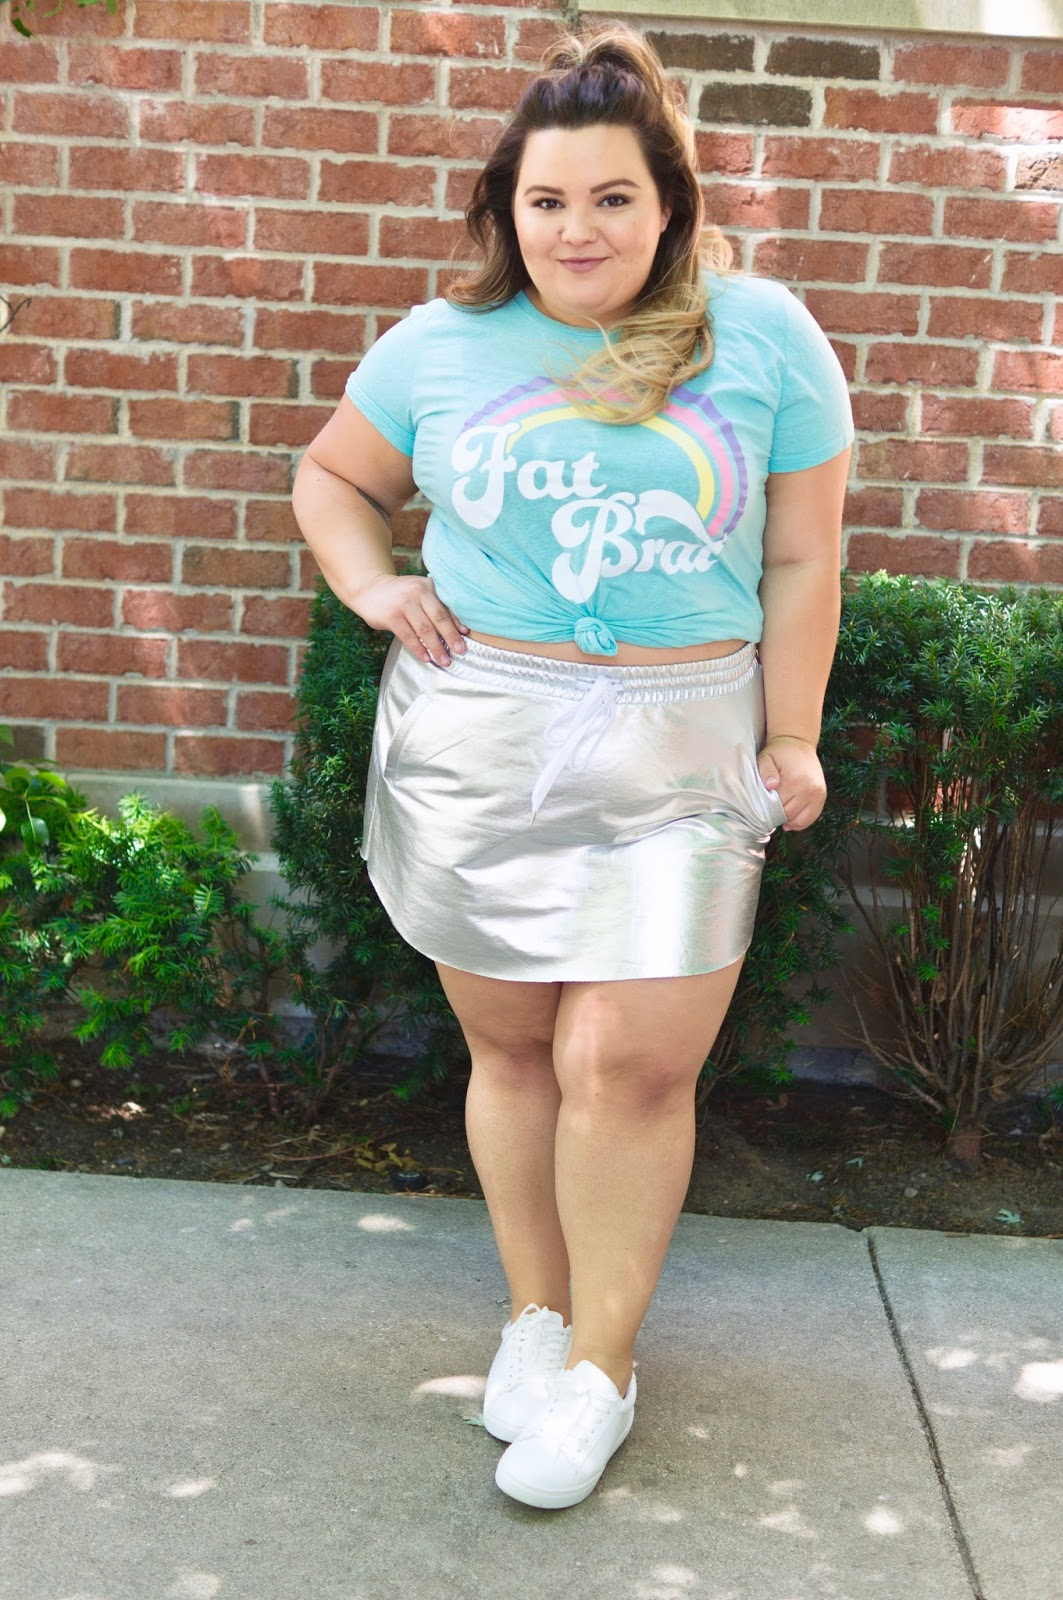 fat acceptance, fat girl flow, corissa, fat brat t-shirt, reclaim fat, fat is not a bad word, natalie in the city, Chicago, plus size fashion blogger, Chicago plus size fashion blogger, scorch magazine, fat and fabulous, curves and confidence, midwest blogger, Chicago fashion, forever 21 metallic skirt